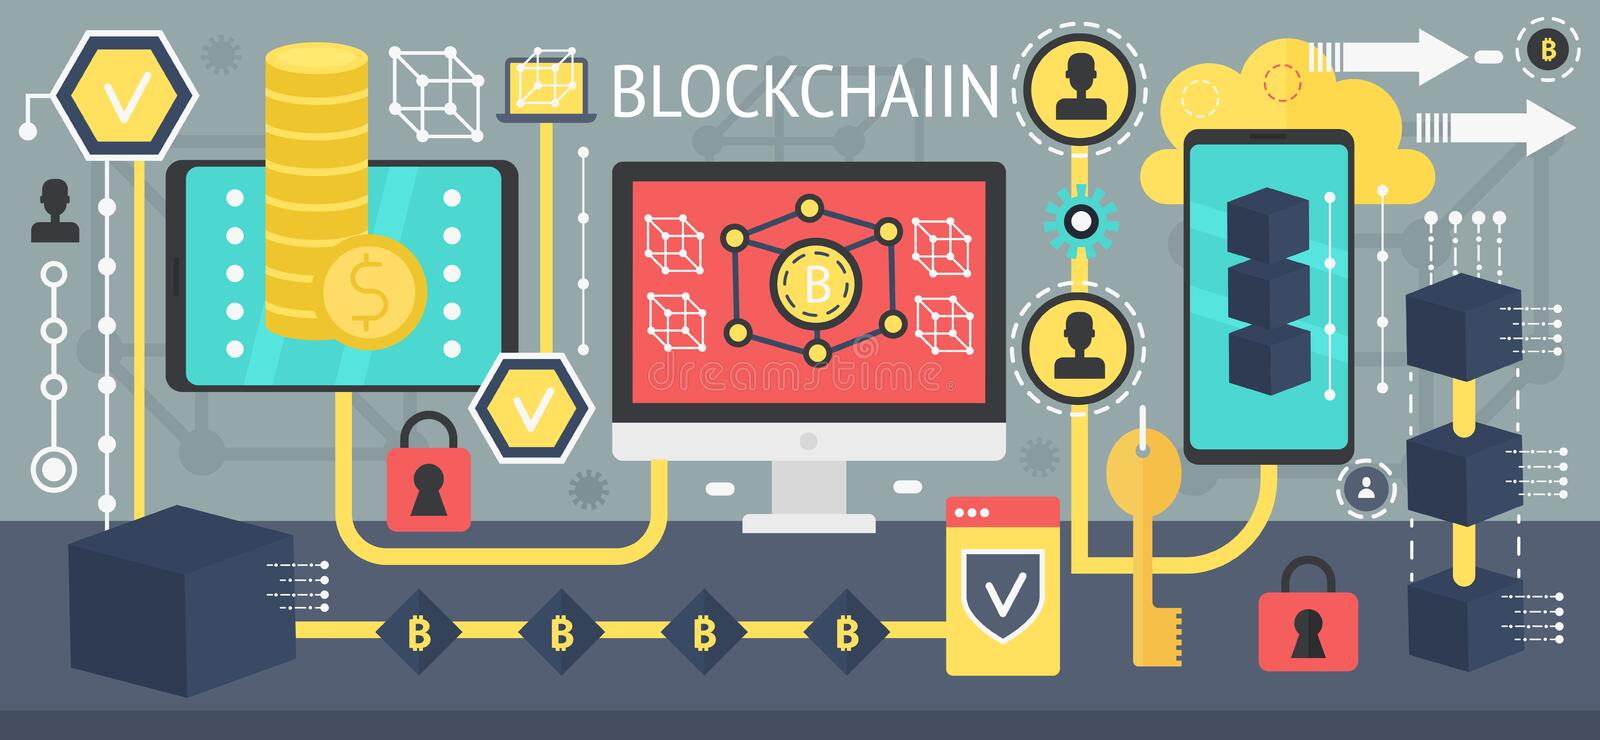 Bitcoin di Cryptocurrency e concetto di tecnologia di rete del blockchain Dispositivi differenti collegati in una rete Vettore royalty illustrazione gratis